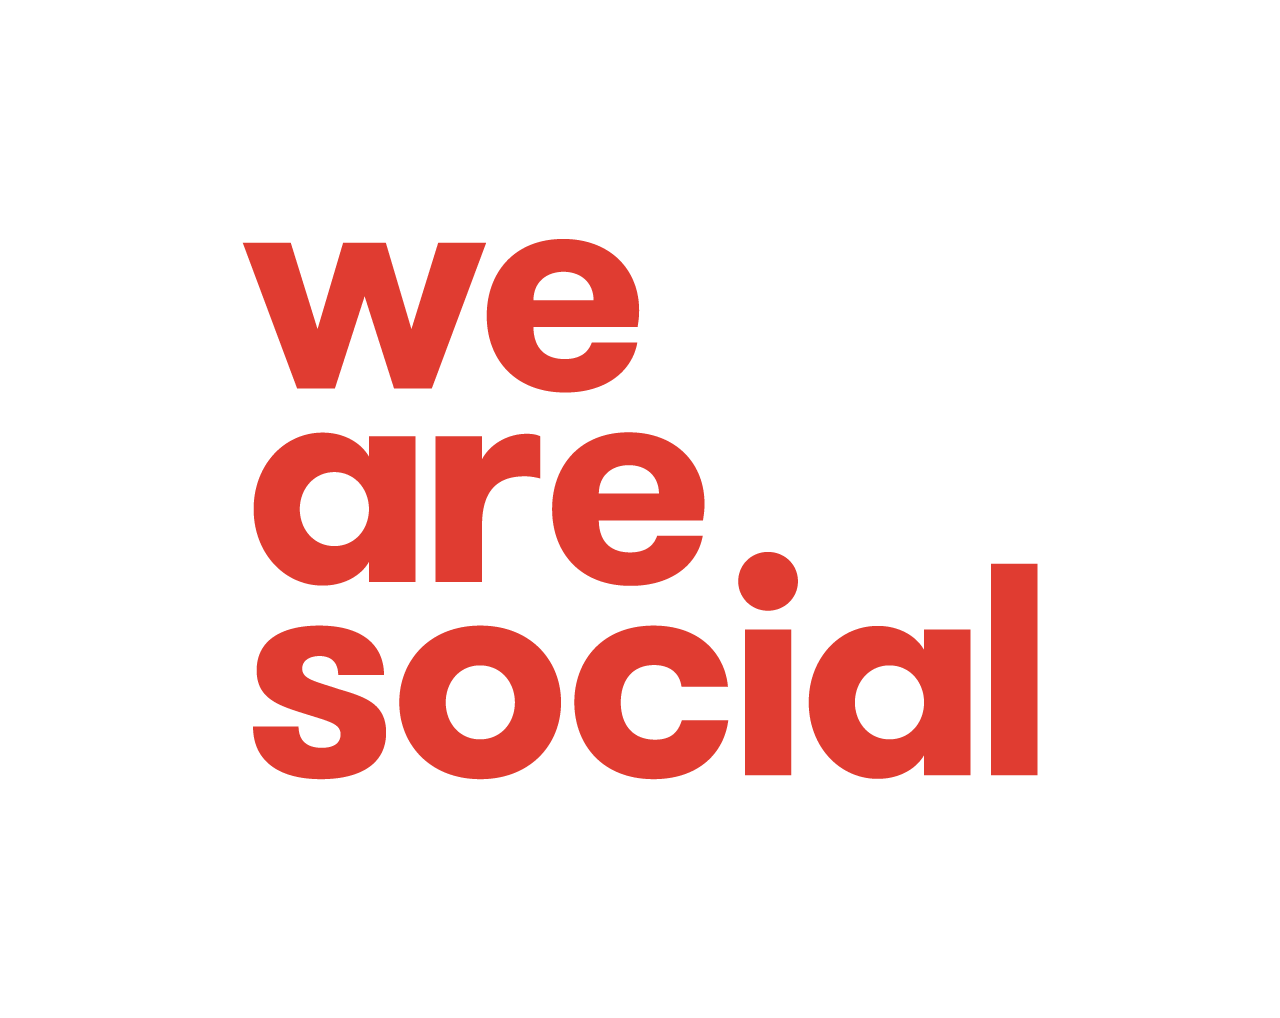 24. We Are Social